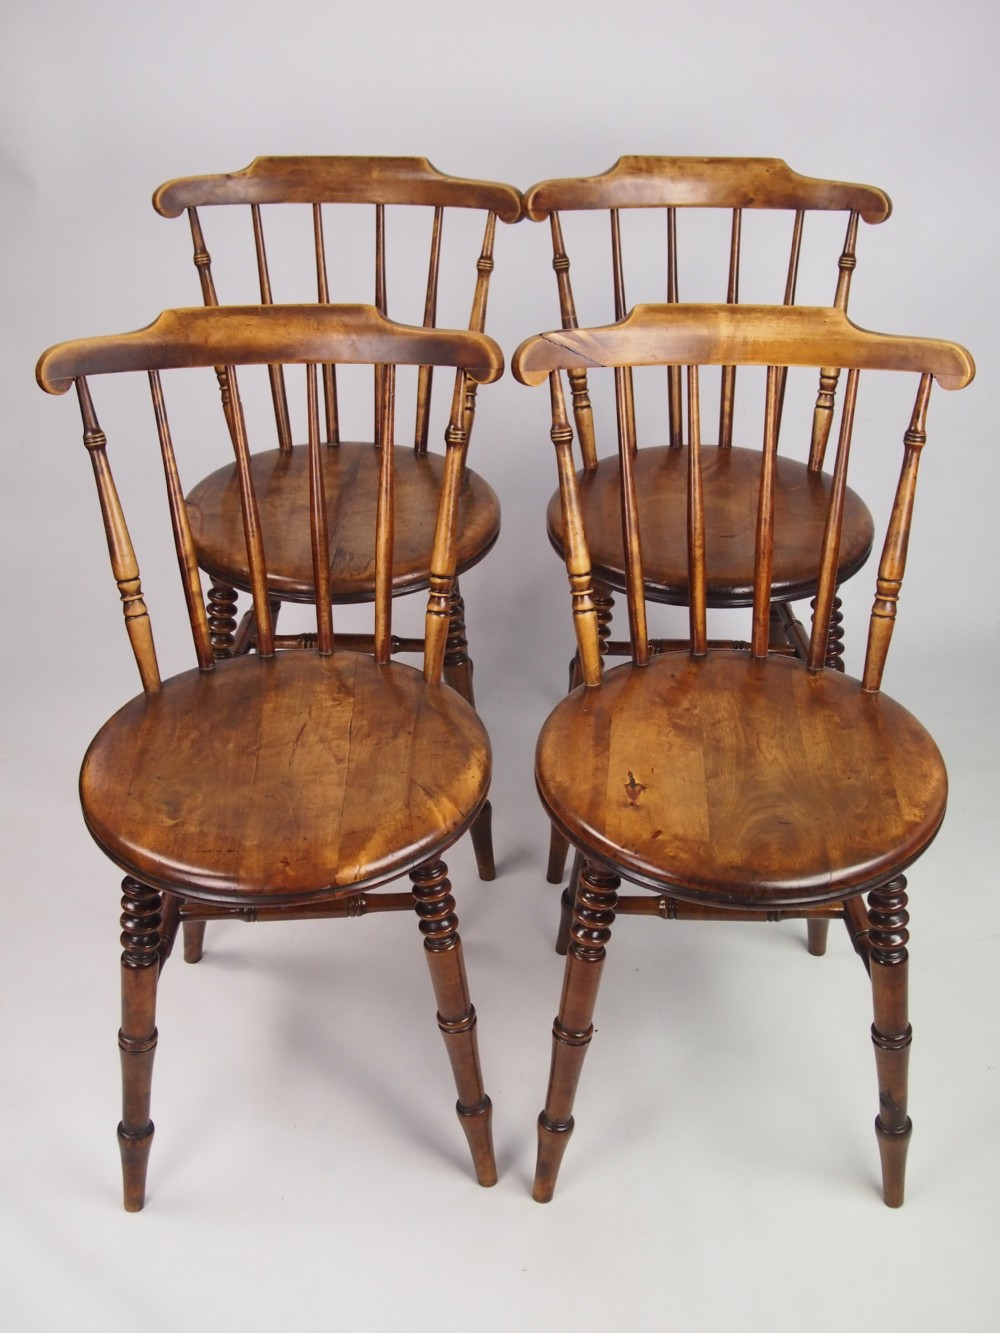 set antique pine kitchen chairs added saved bespoke furniture handmade kitchen designs warwickshire uk